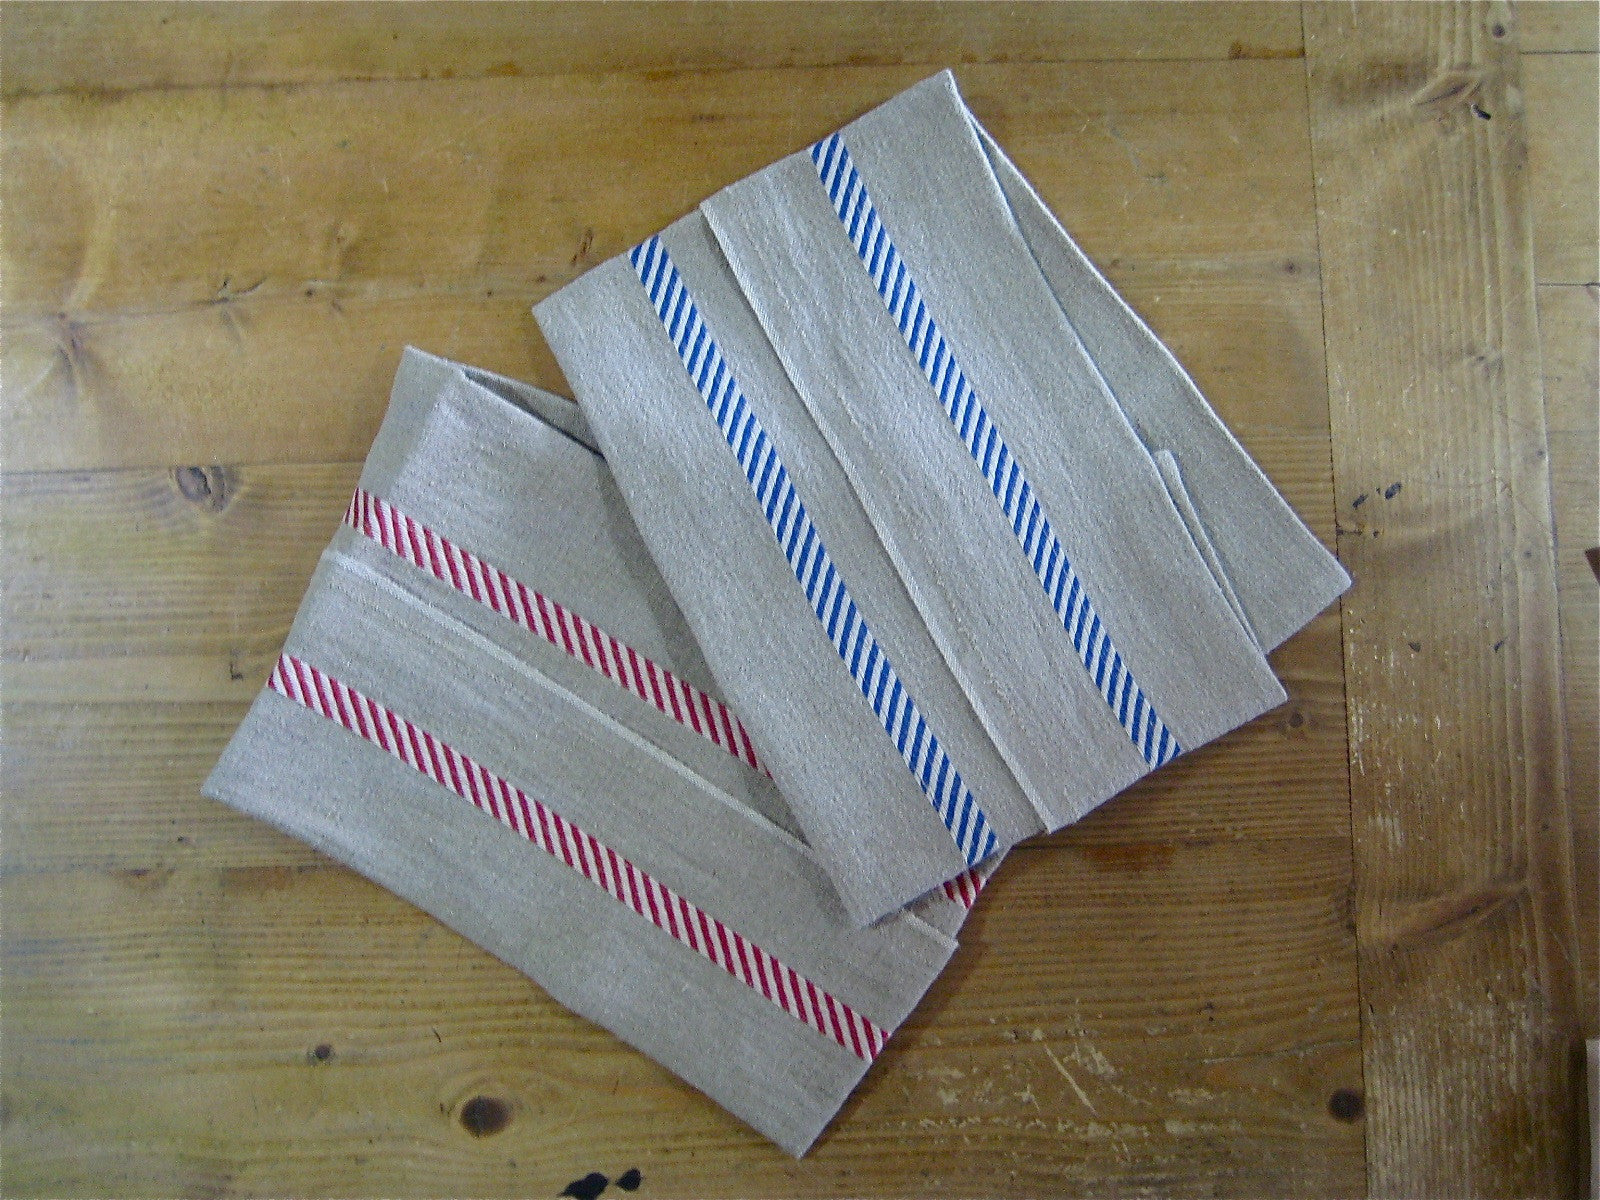 French 100% Linen Natural with Diagonal Stripes Tea Towel by Charvet Editions